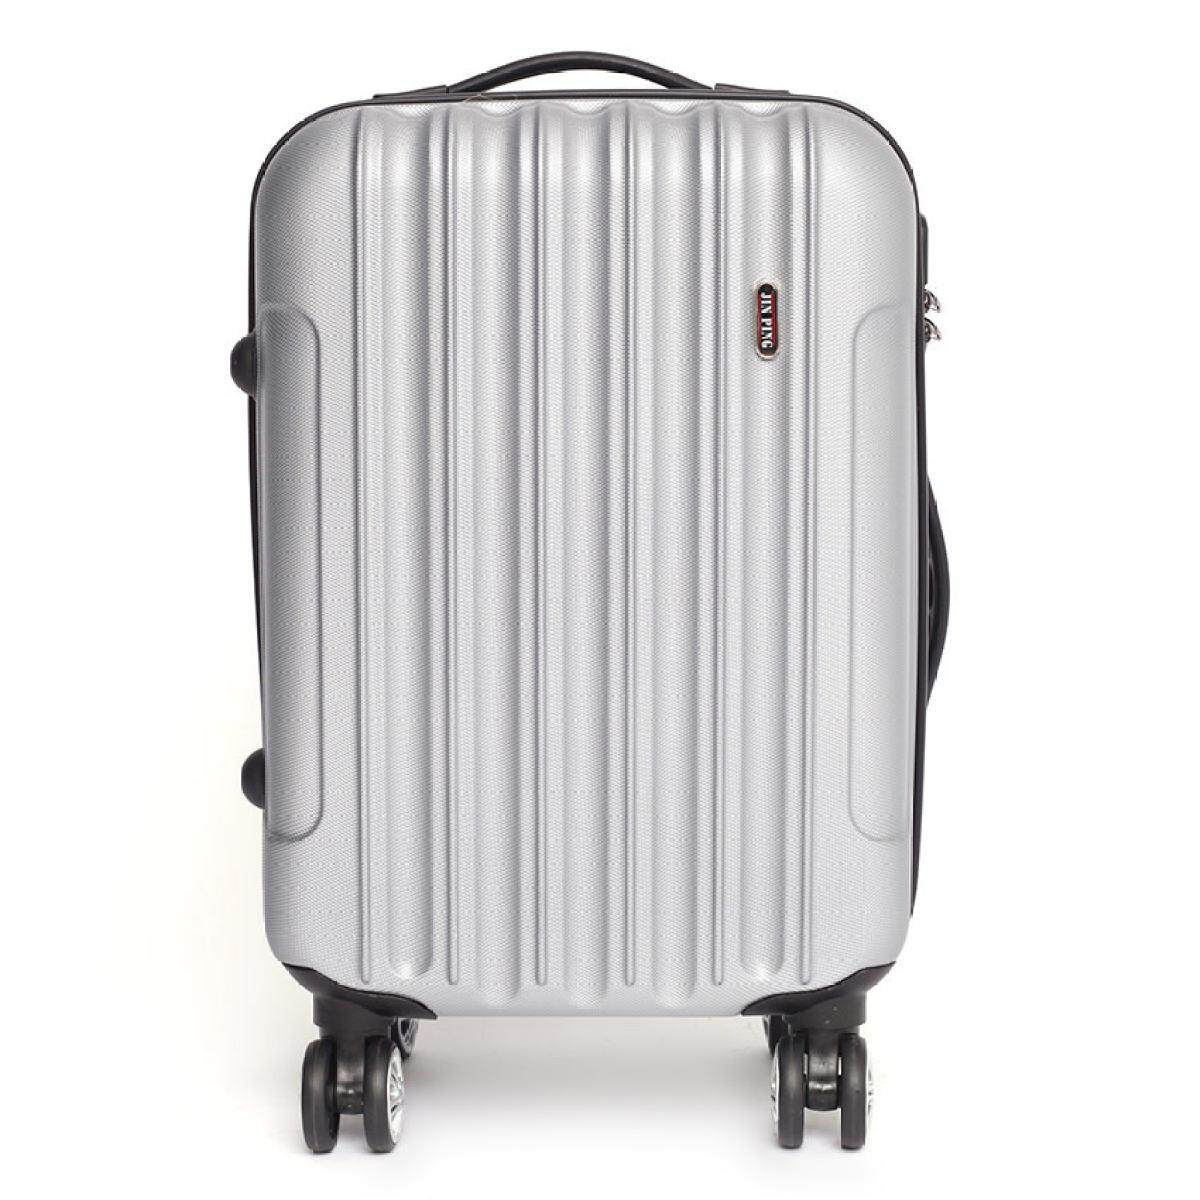 Voyage Hard Case ABS Luggage Bagasi- 20 Inches (Silver)